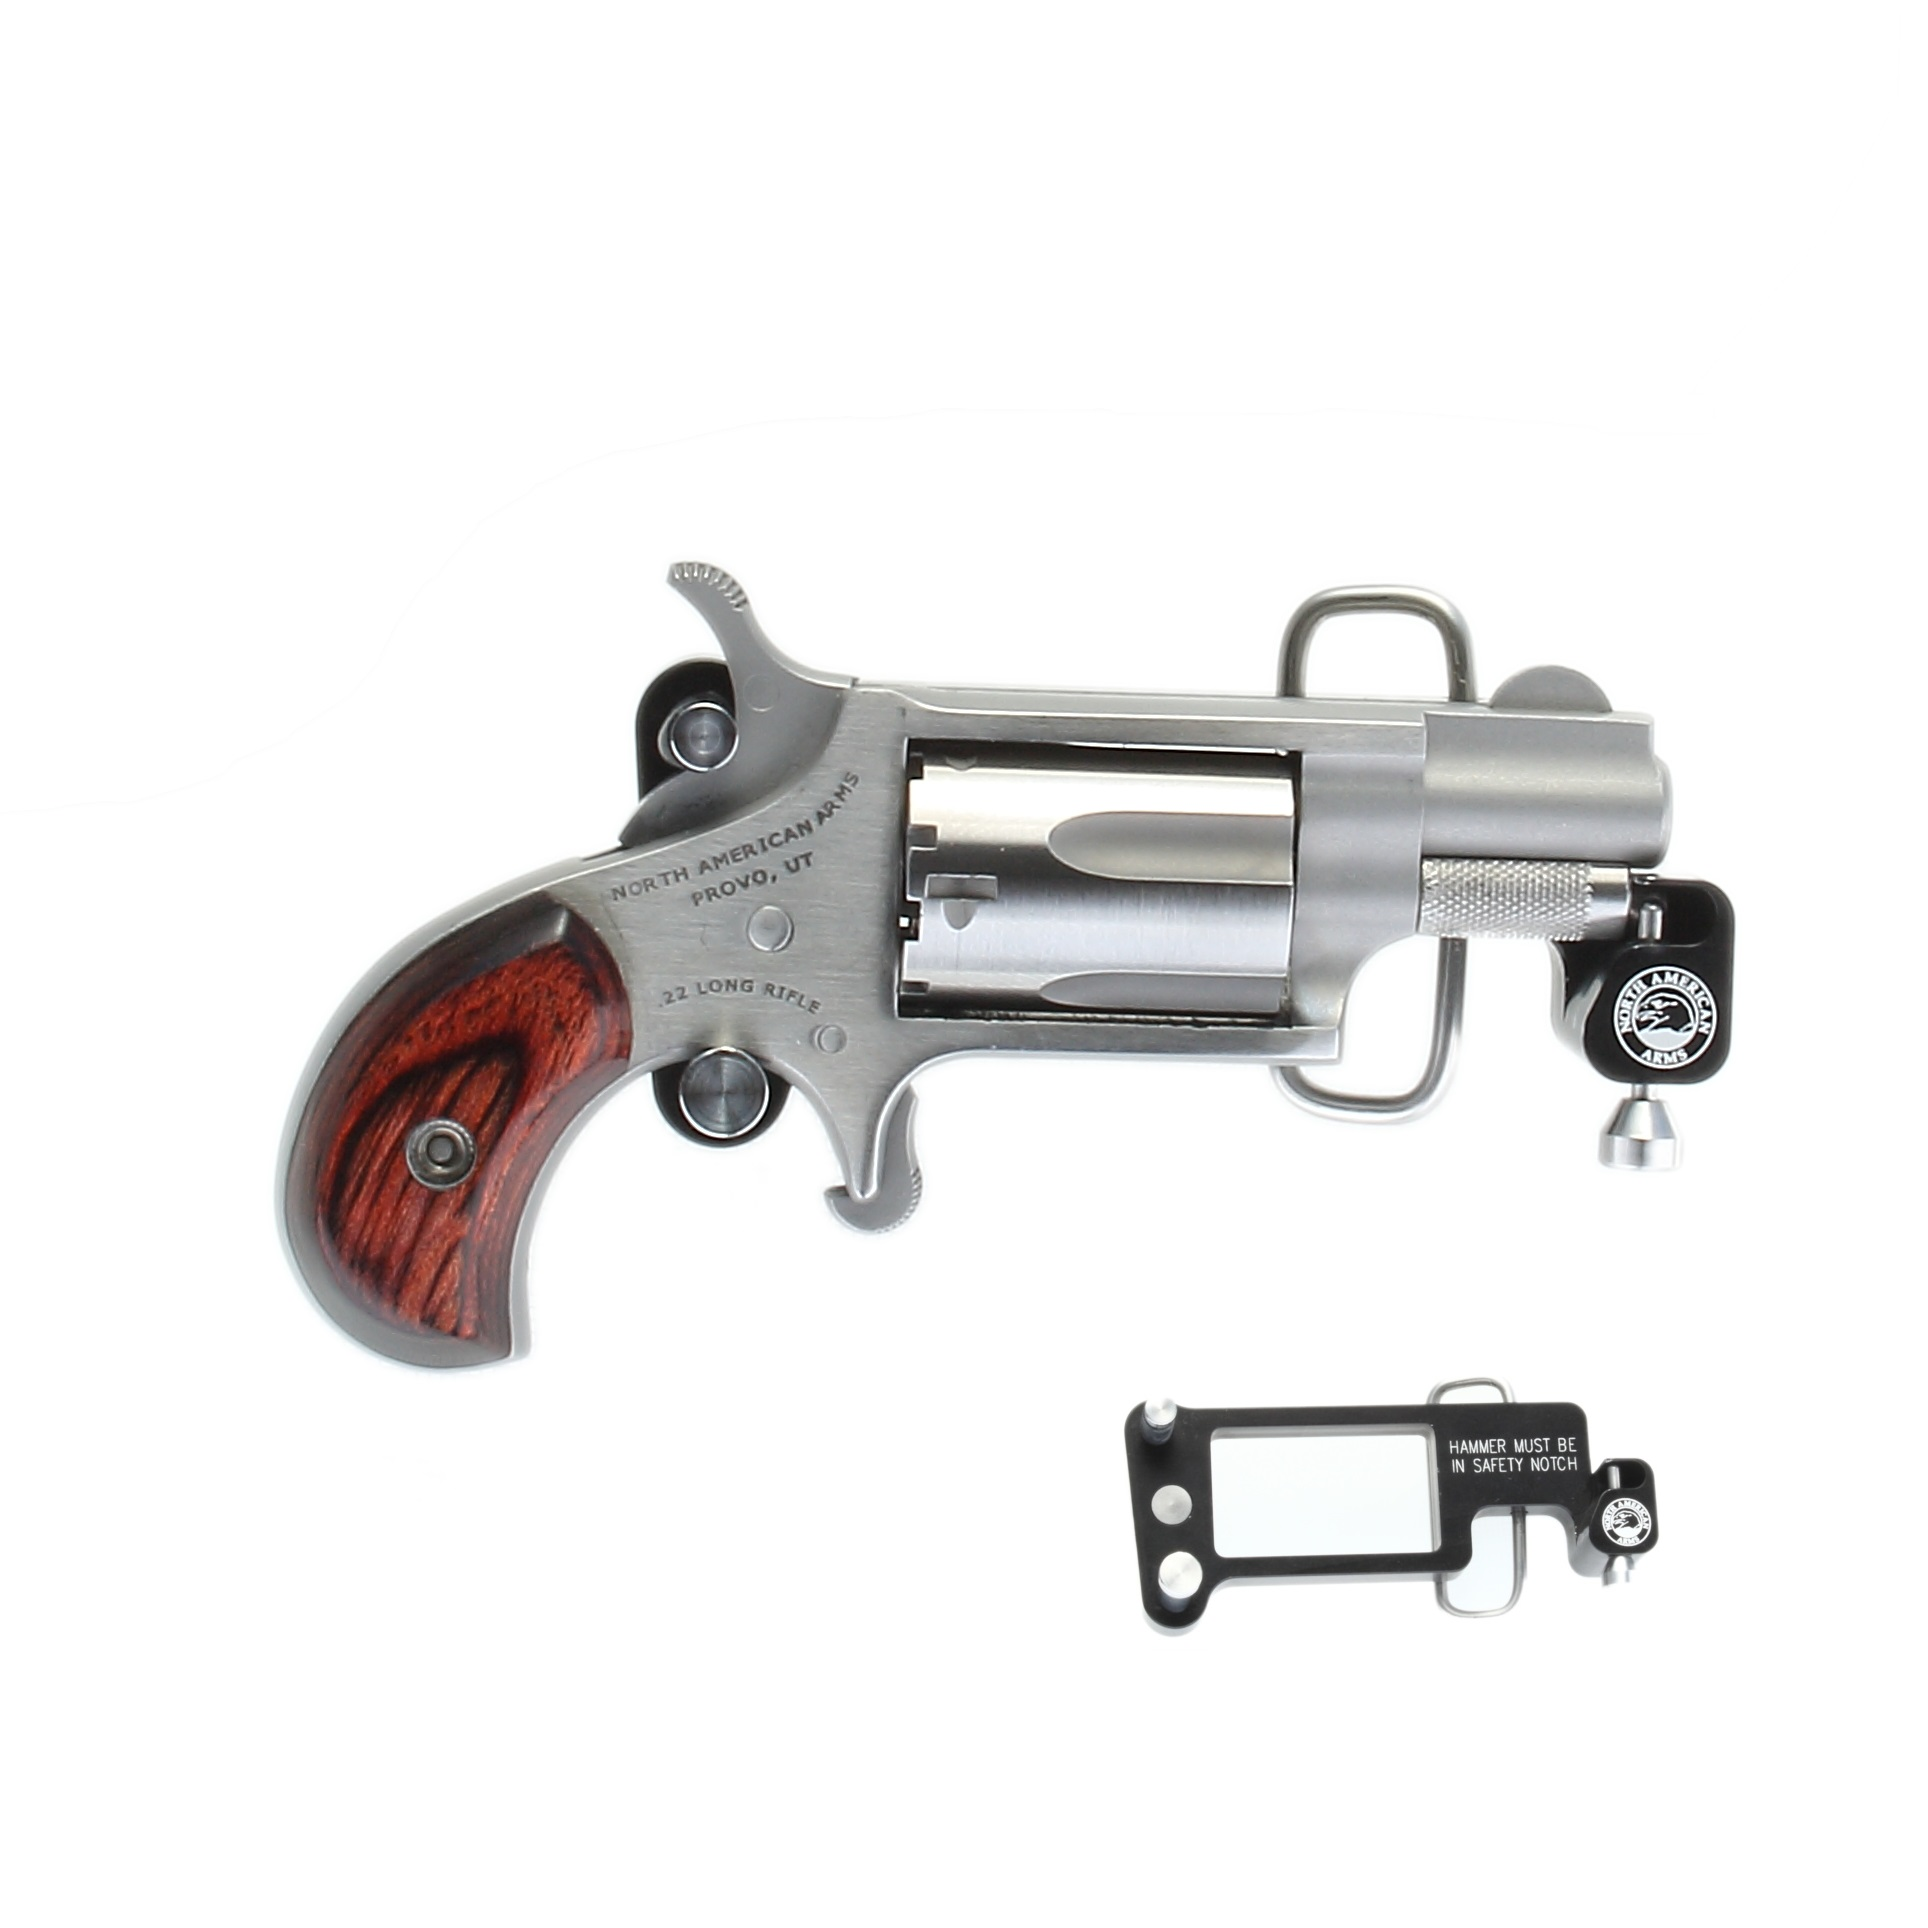 North American Arms Mini-Revolver 22 Magnum